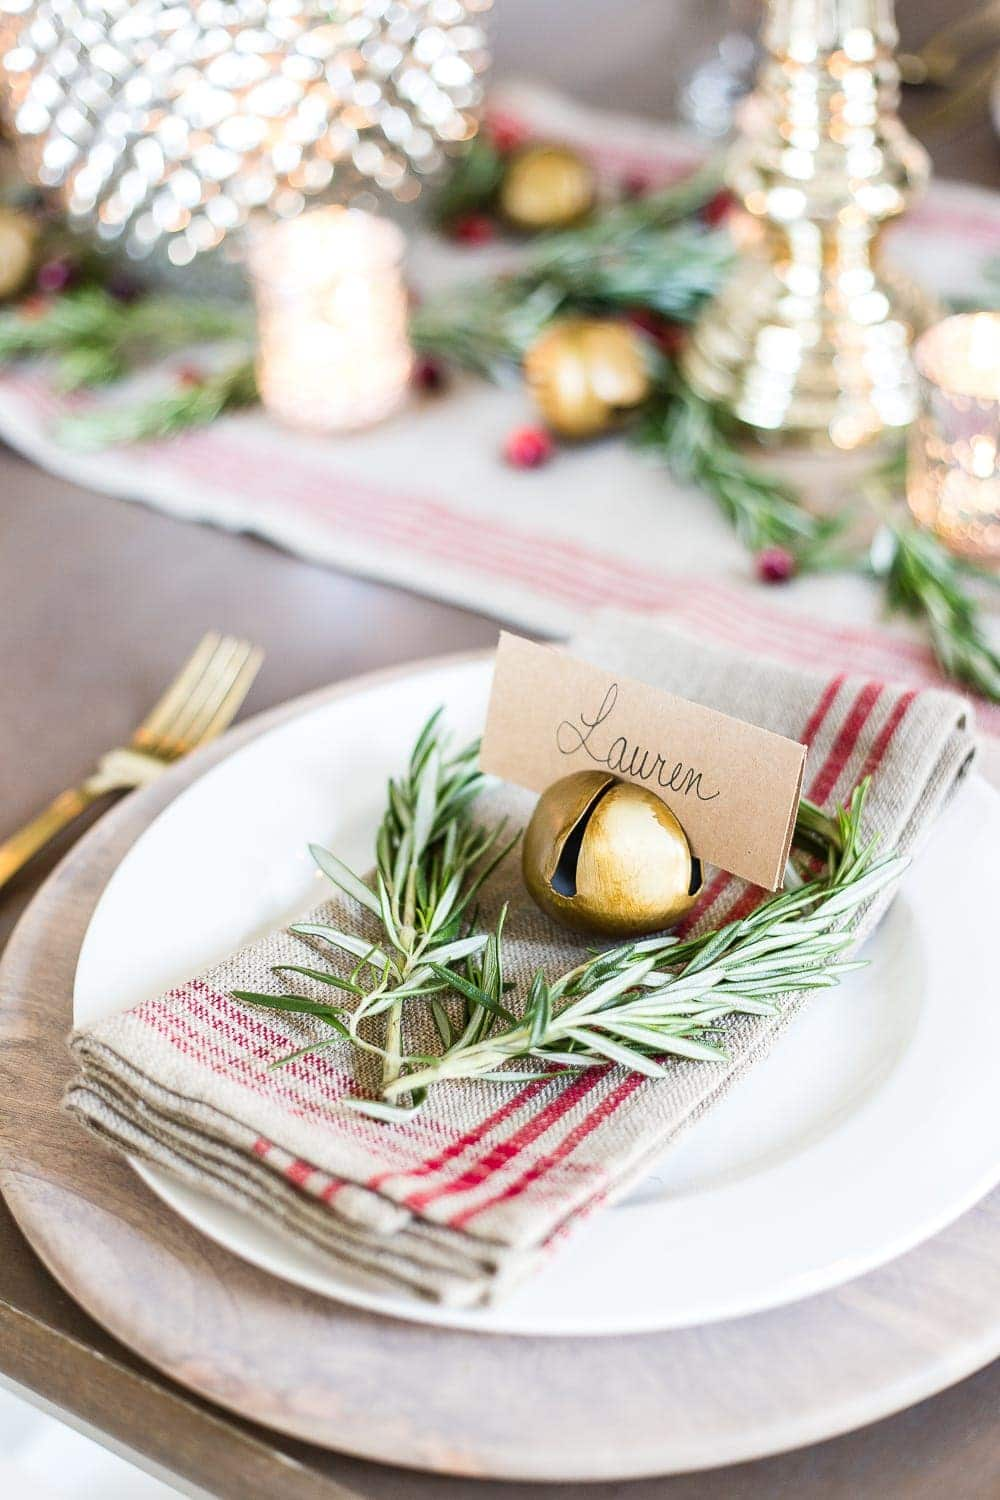 Thrifty Christmas decorating idea: Use a jingle bell as a place card holder